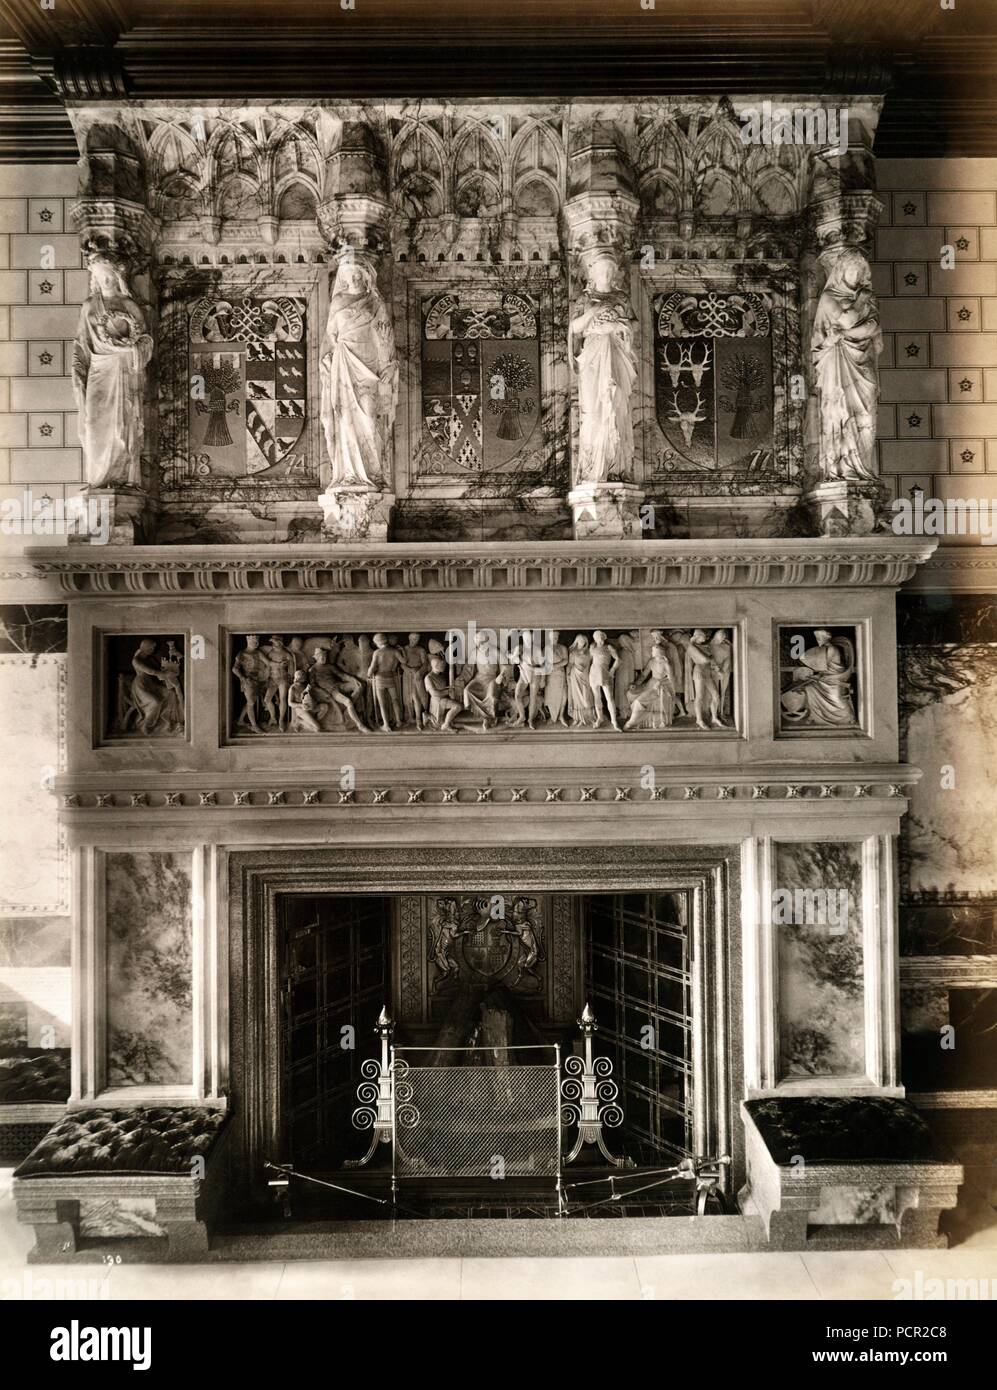 Fireplace and ornate mantlepiece in the saloon at Eaton Hall, Eccleston, Cheshire, 1887. Eaton Hall was remodelled in the Gothic style in 1870-1882 by Alfred Waterhouse for the Duke of Westminster. In 1963 the main part of the hall was demolished, and a new hall constructed. The chapel, clock tower and stables were retained. - Stock Image